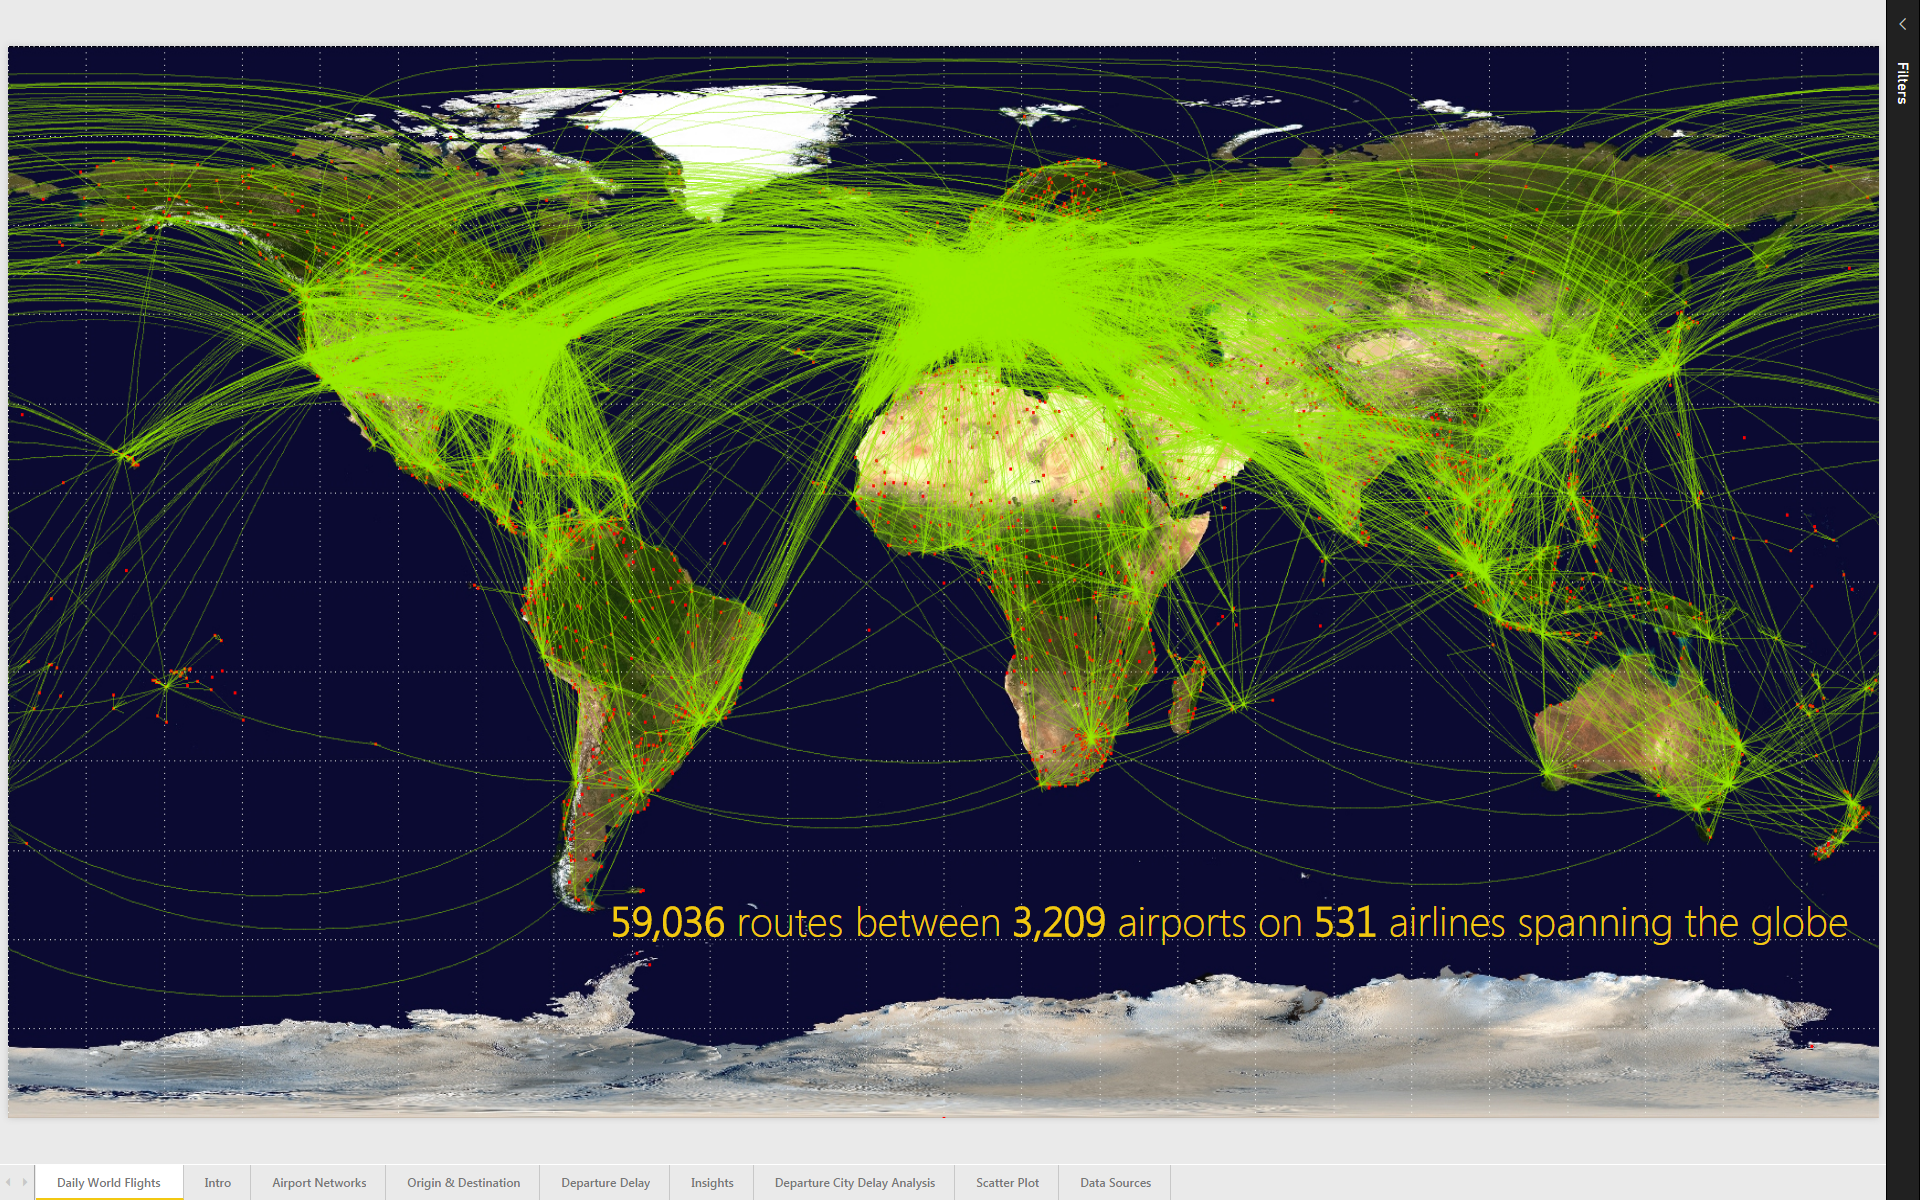 Provide Insights into the Flight Departure Delays of US Airlines - Dec 2015